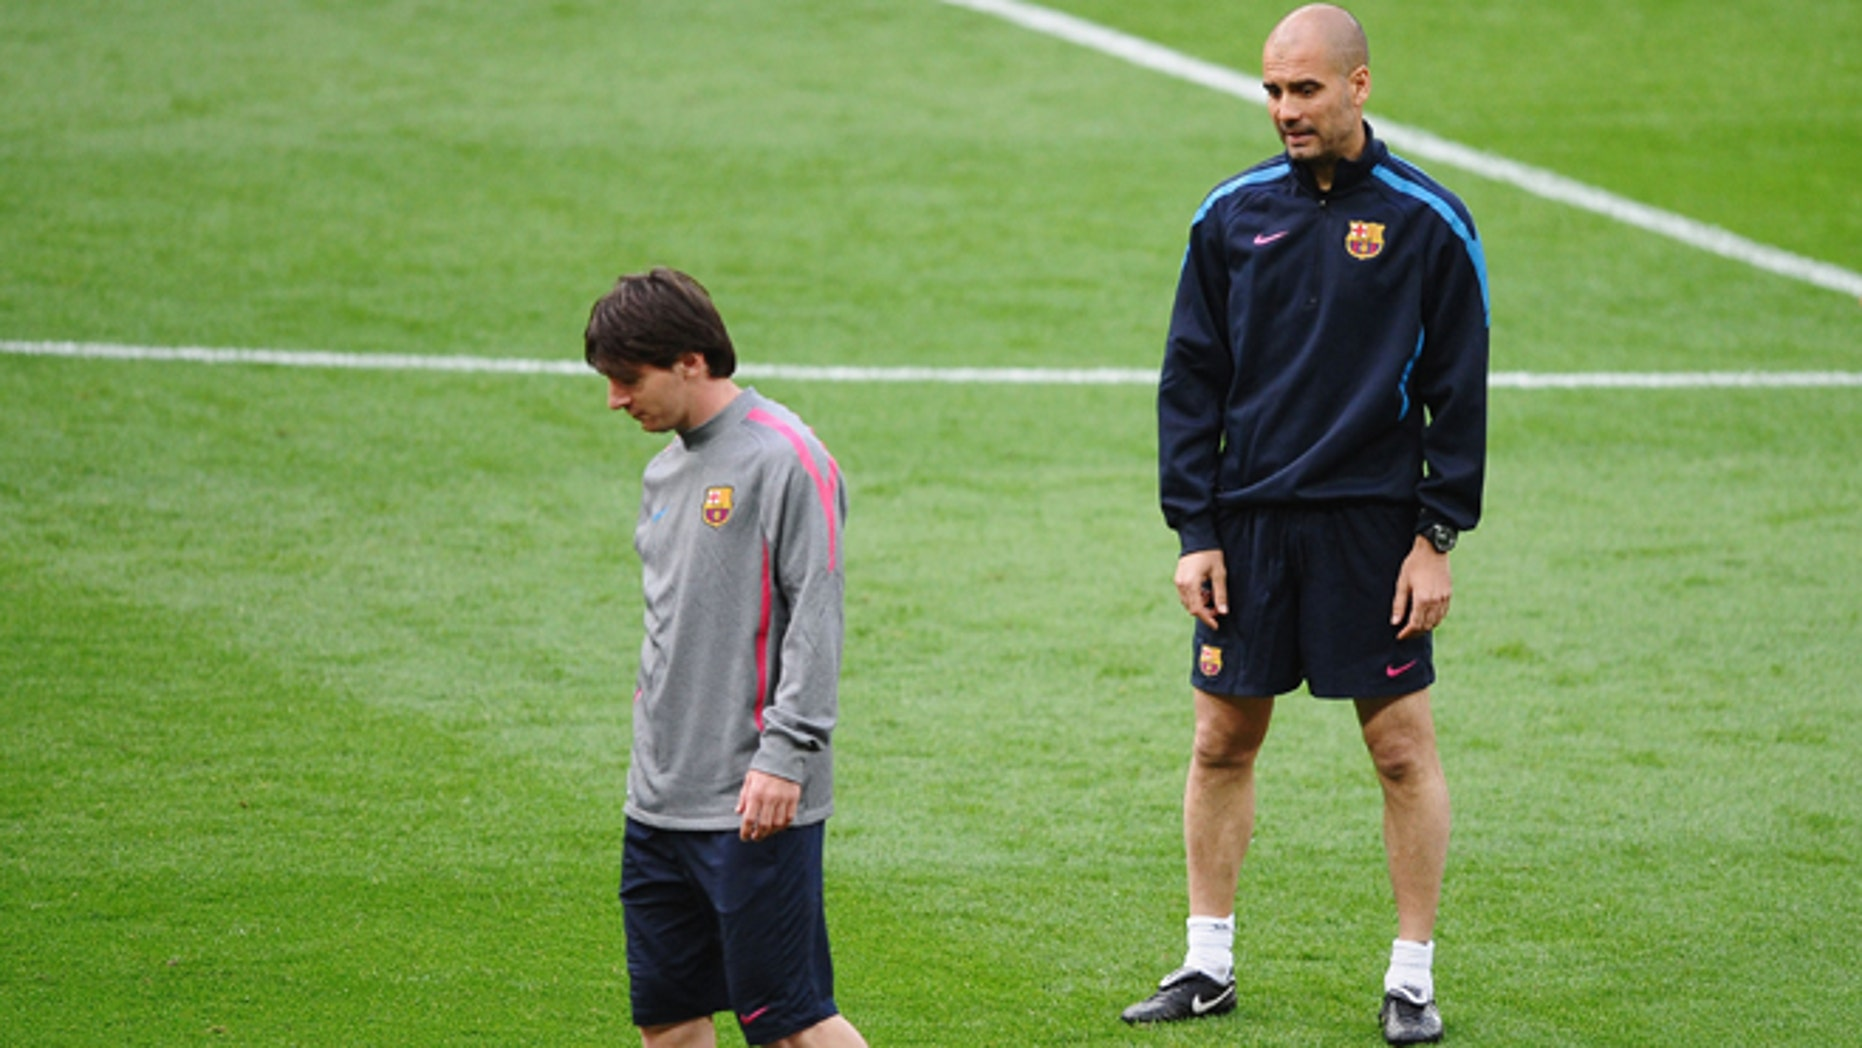 """Lionel Messi of FC Barcelona (L) walks away from Josep """"Pep"""" Guardiola, then-manager of FC Barcelona looks on during training session at Wembley Stadium in London on May 27, 2011. The two will face off in a game between Barca and Guardiola's new team, Bayern Munich. (Photo by Laurence Griffiths/Getty Images)"""